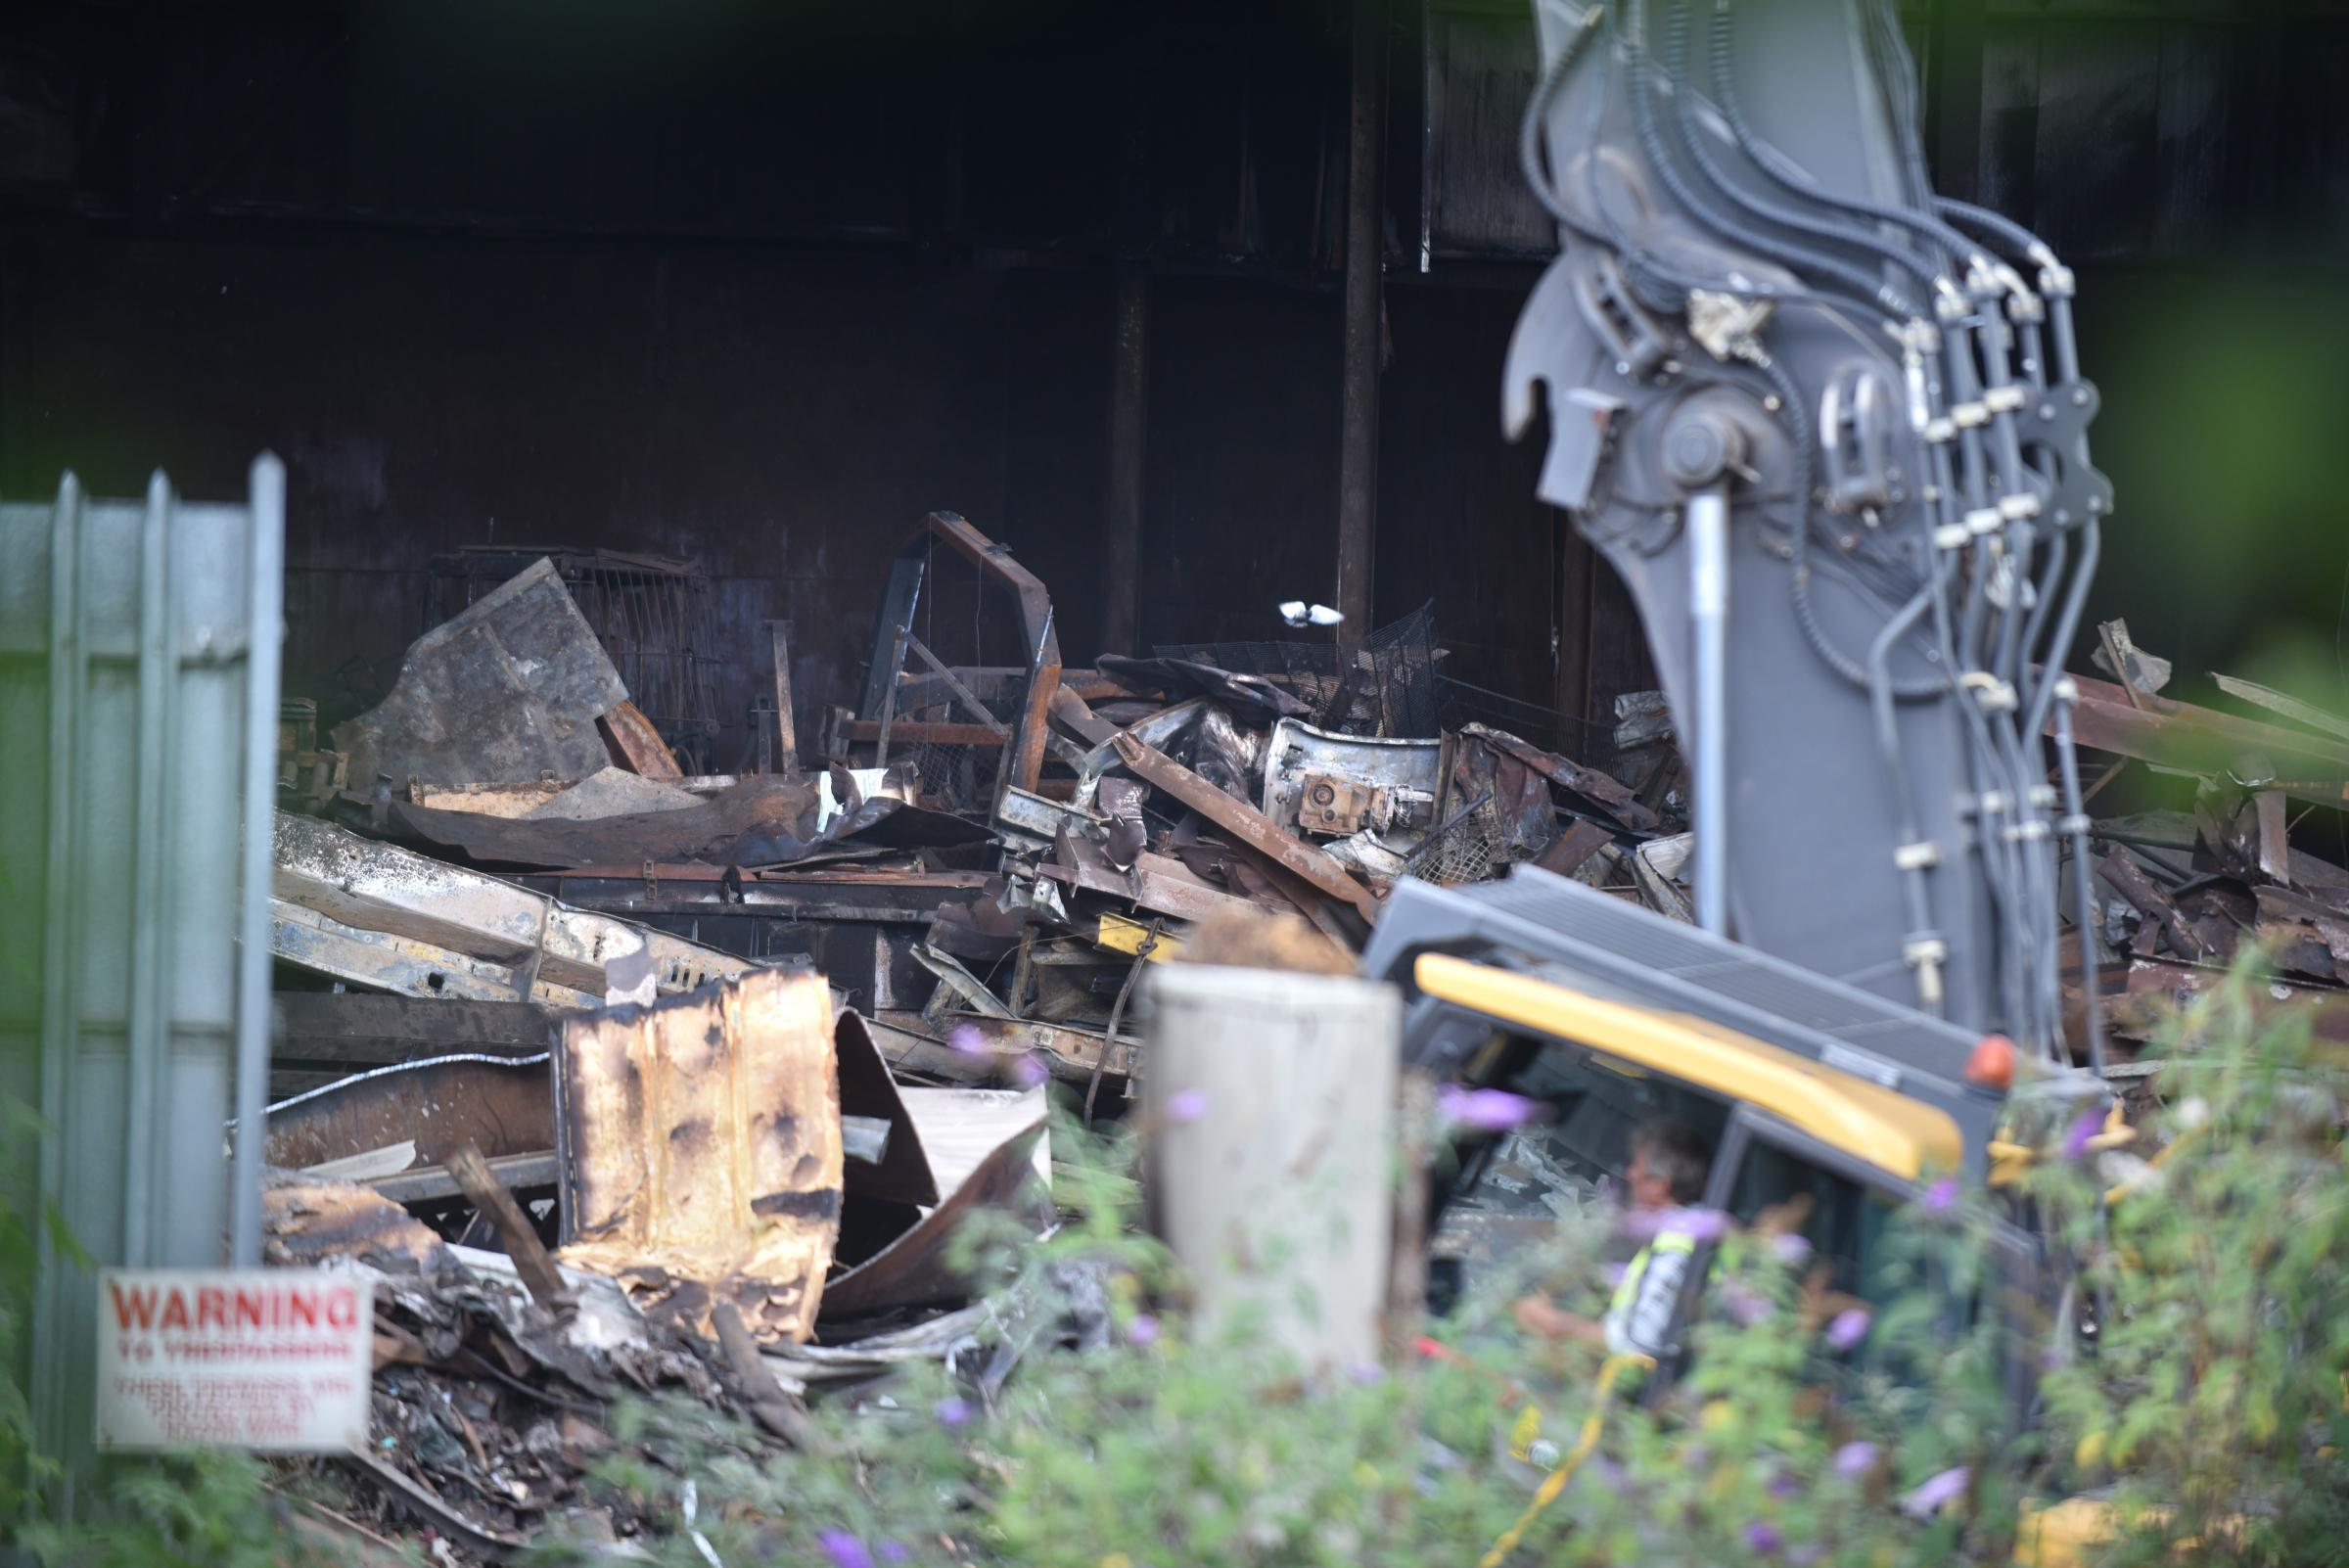 KNOCKED DOWN: Work continues to demolish fire-wrecked structures at AWM in Frizinghall